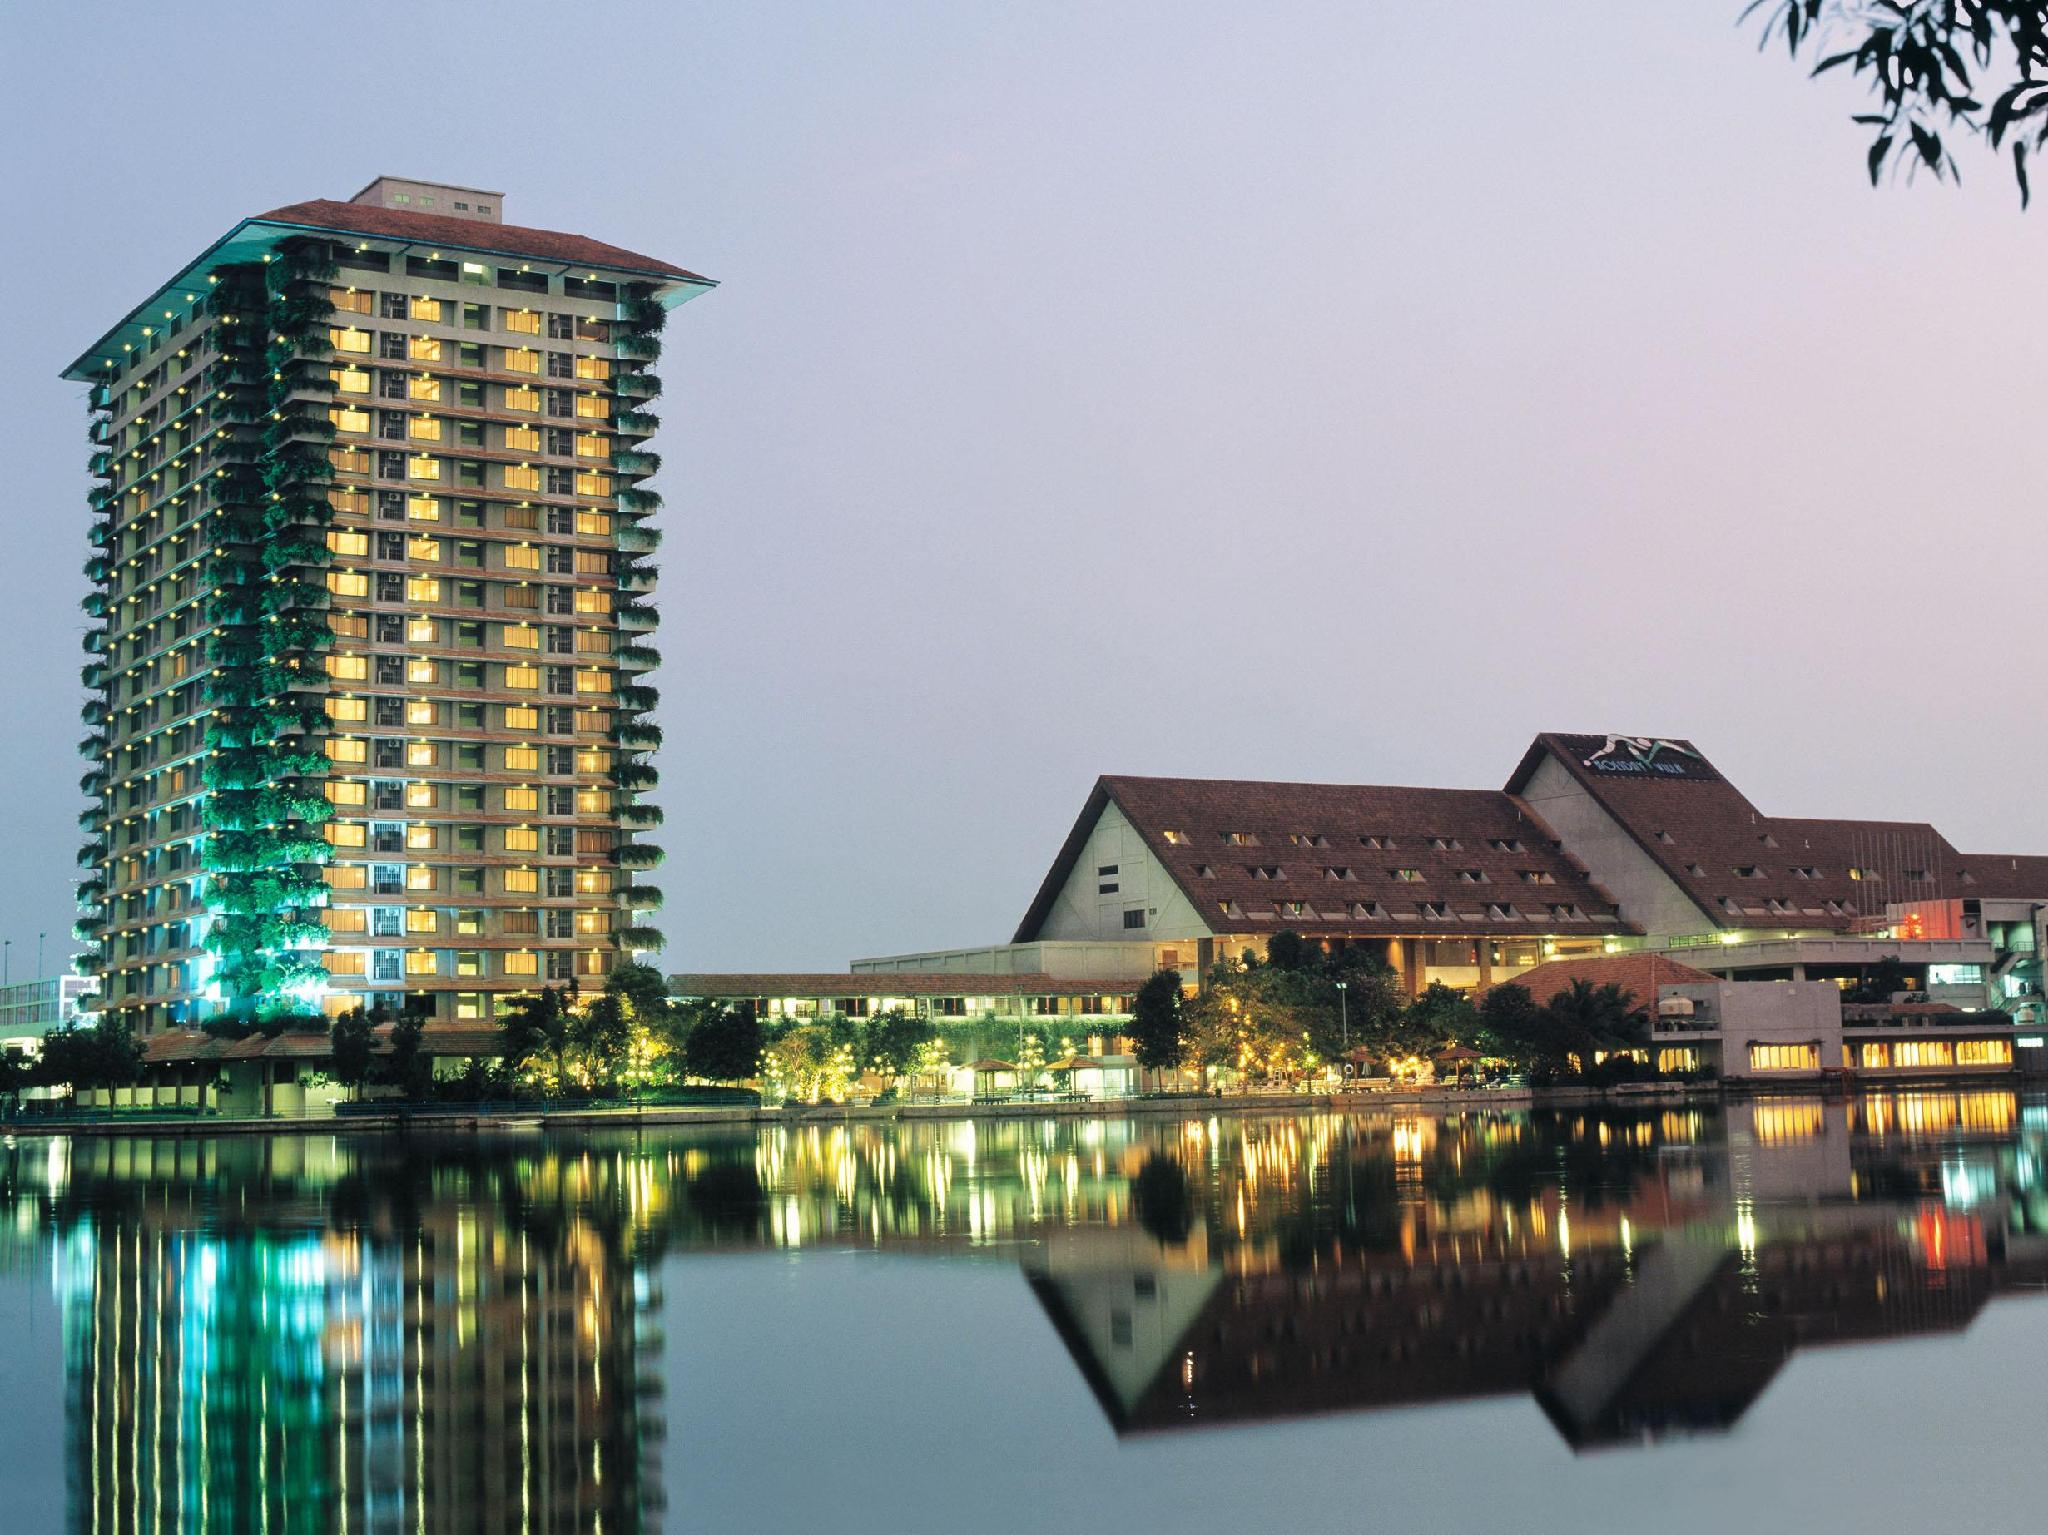 Holiday Villa Hotel & Suites Subang - Hotels and Accommodation in Malaysia, Asia